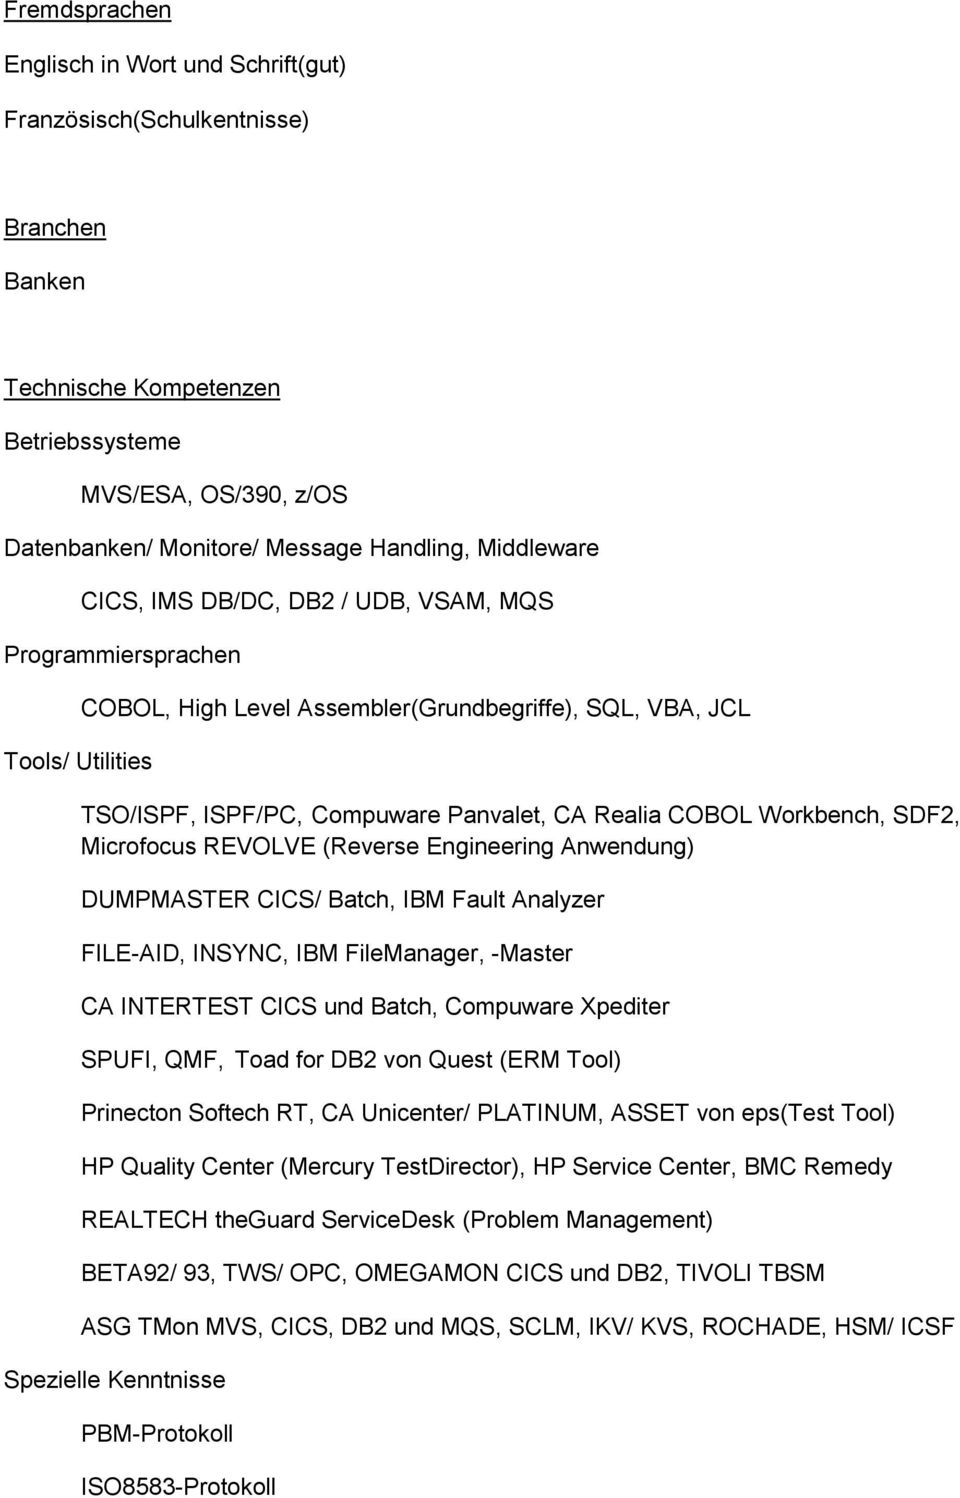 Workbench, SDF2, Microfocus REVOLVE (Reverse Engineering Anwendung) DUMPMASTER CICS/ Batch, IBM Fault Analyzer FILE-AID, INSYNC, IBM FileManager, -Master CA INTERTEST CICS und Batch, Compuware